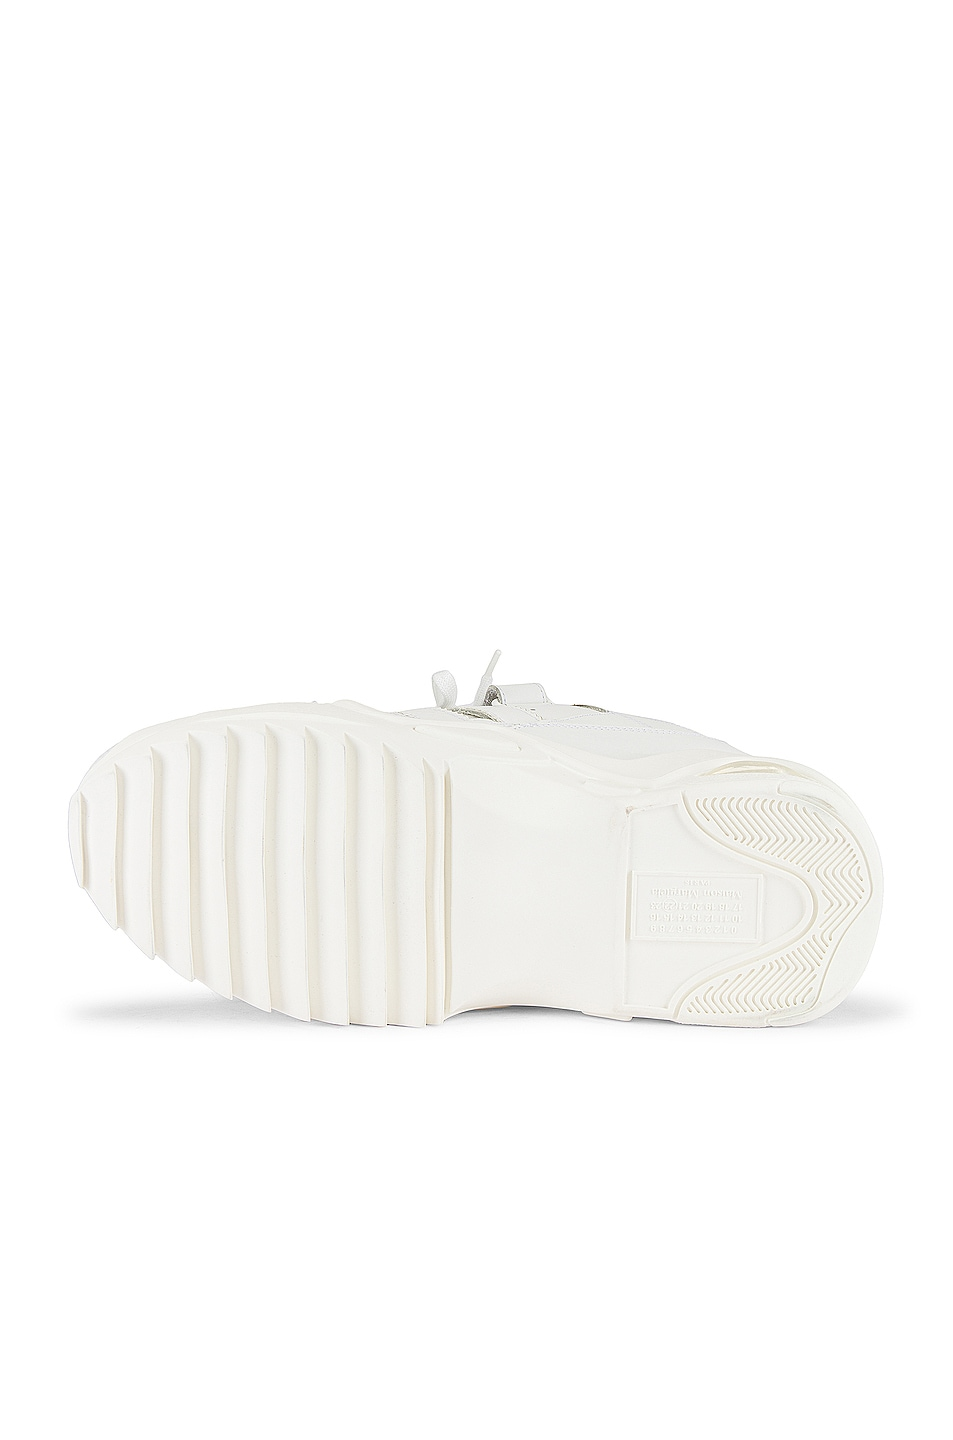 Image 6 of Maison Margiela Retro Fit Midi Sneaker in White